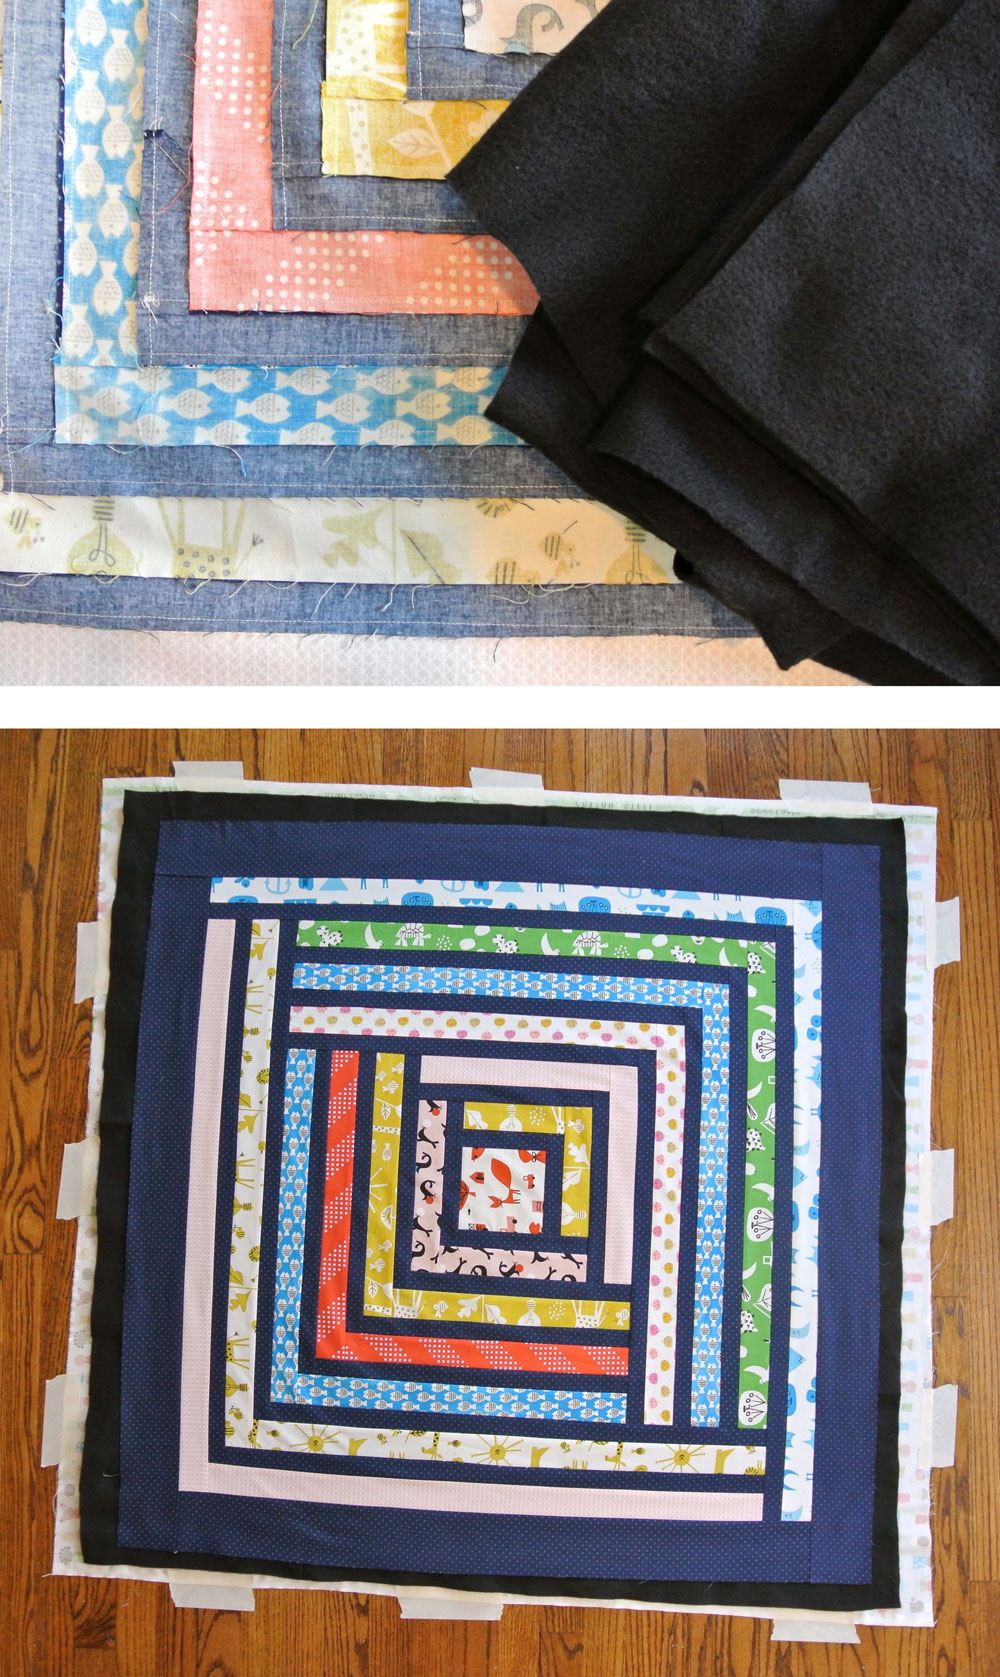 The truth about when and why to use black batting in a quilt. | Suzy Quilts https://suzyquilts.com/truth-about-black-batting/